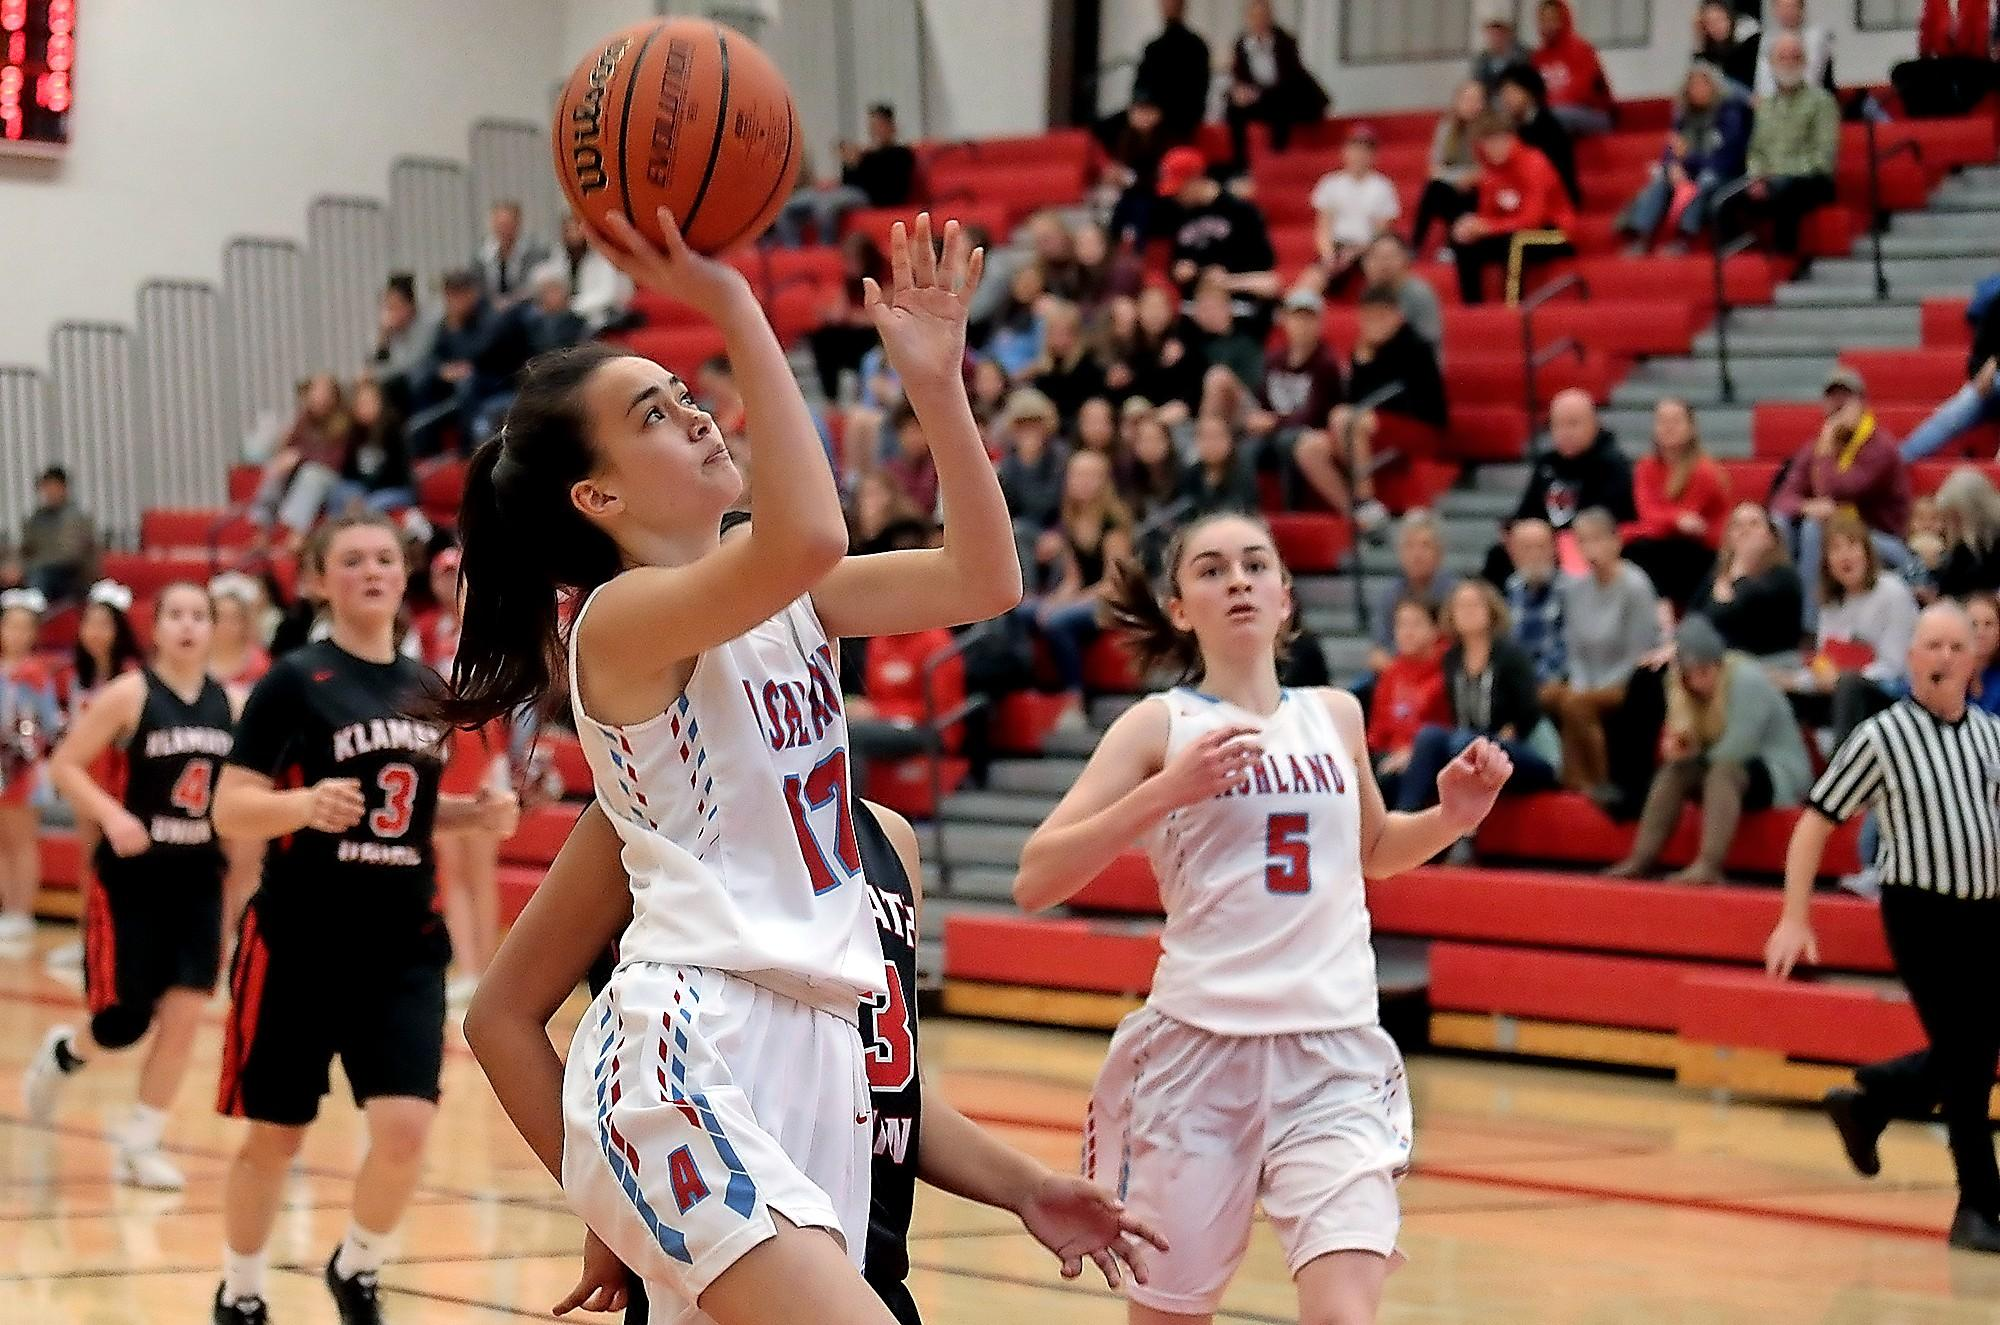 Ashland High junior Jackie Moran attempts to shoot past Klamath Union defenders, while teammate Jayd Sollinger looks on, at Mountain Avenue Gym on Wednesday.(PHOTO BY:  LARRY STAUTH JR)